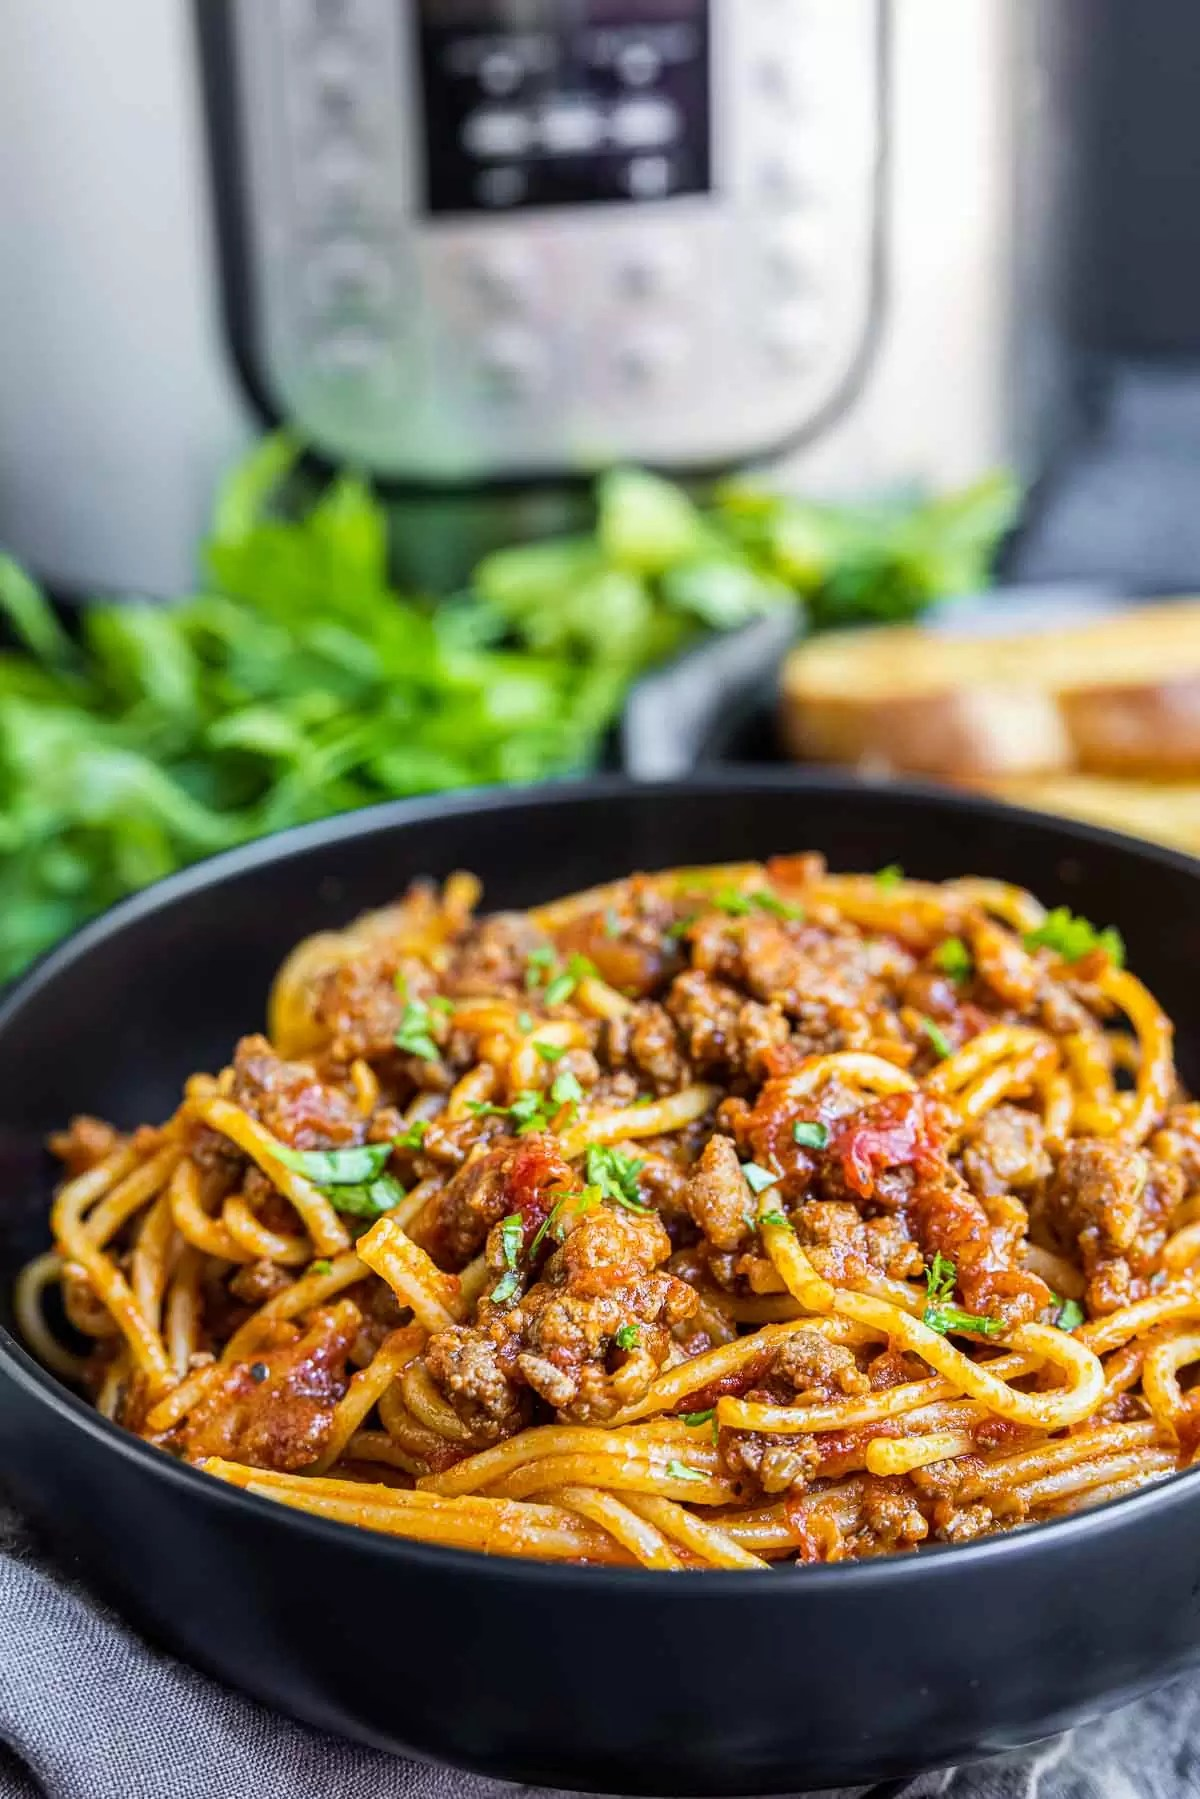 Instant Pot Spaghetti in a black bowl with Instant Pot